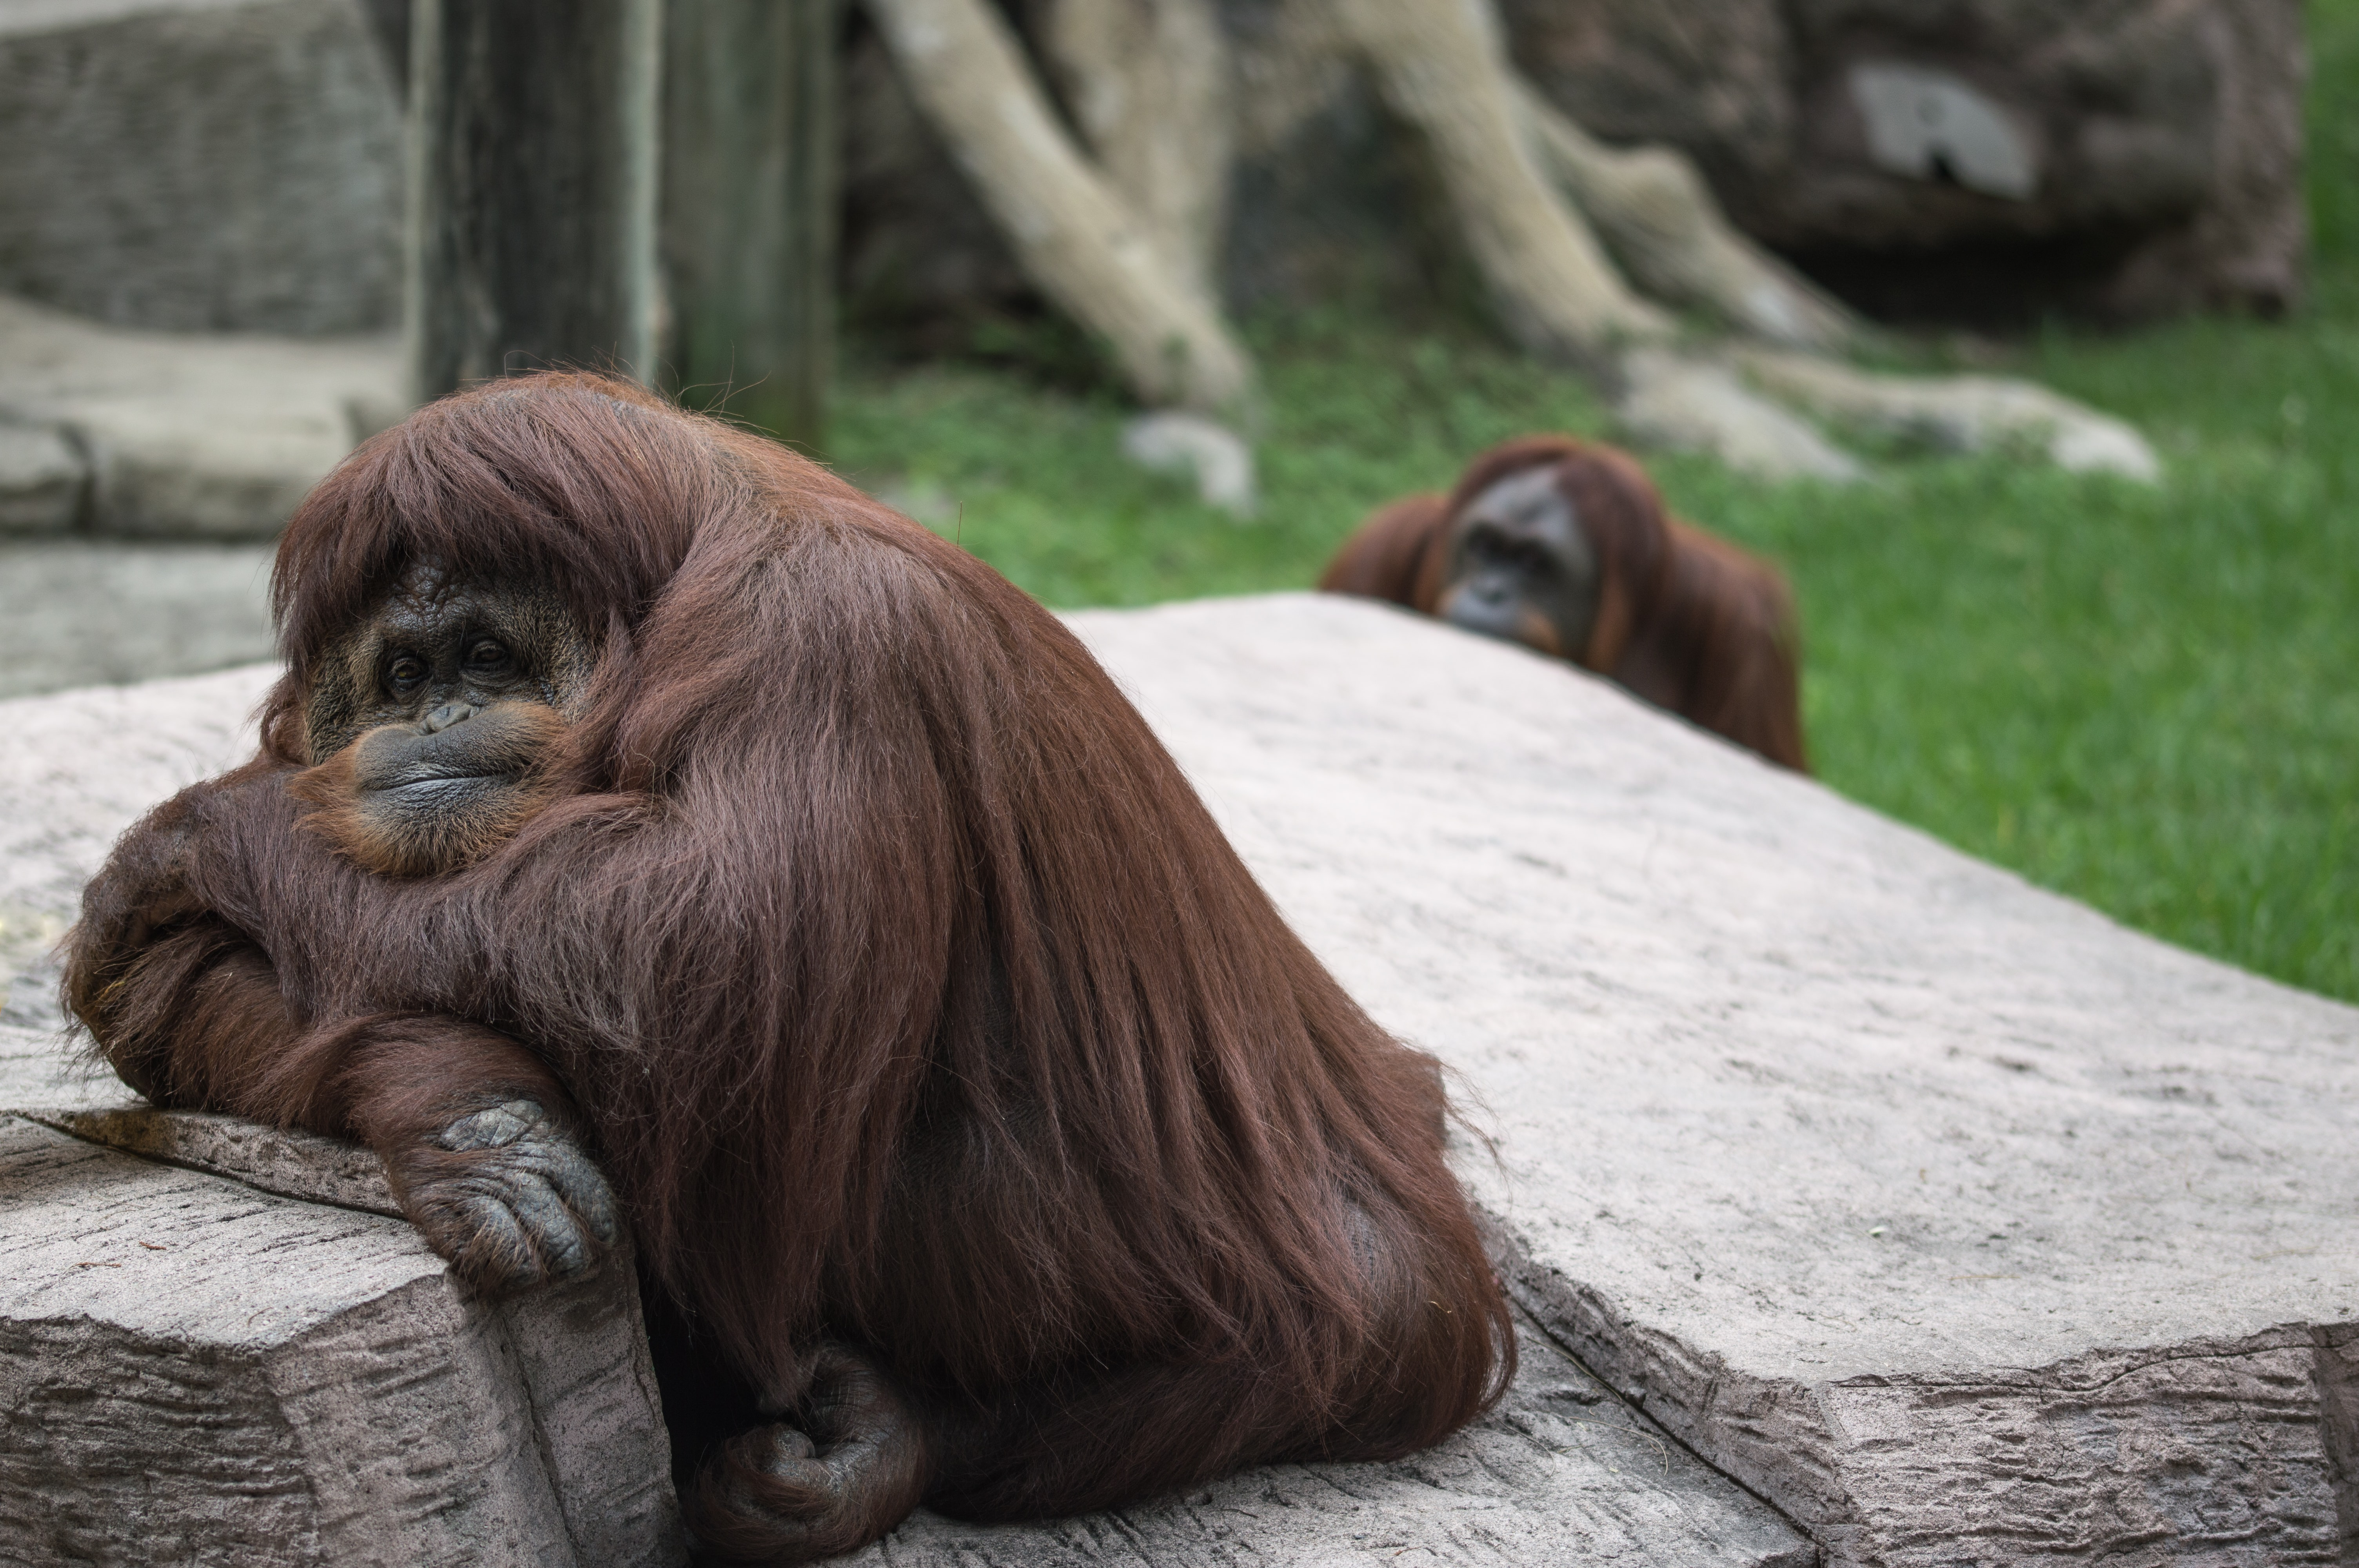 two brown monkeys sitting on floor at daytime